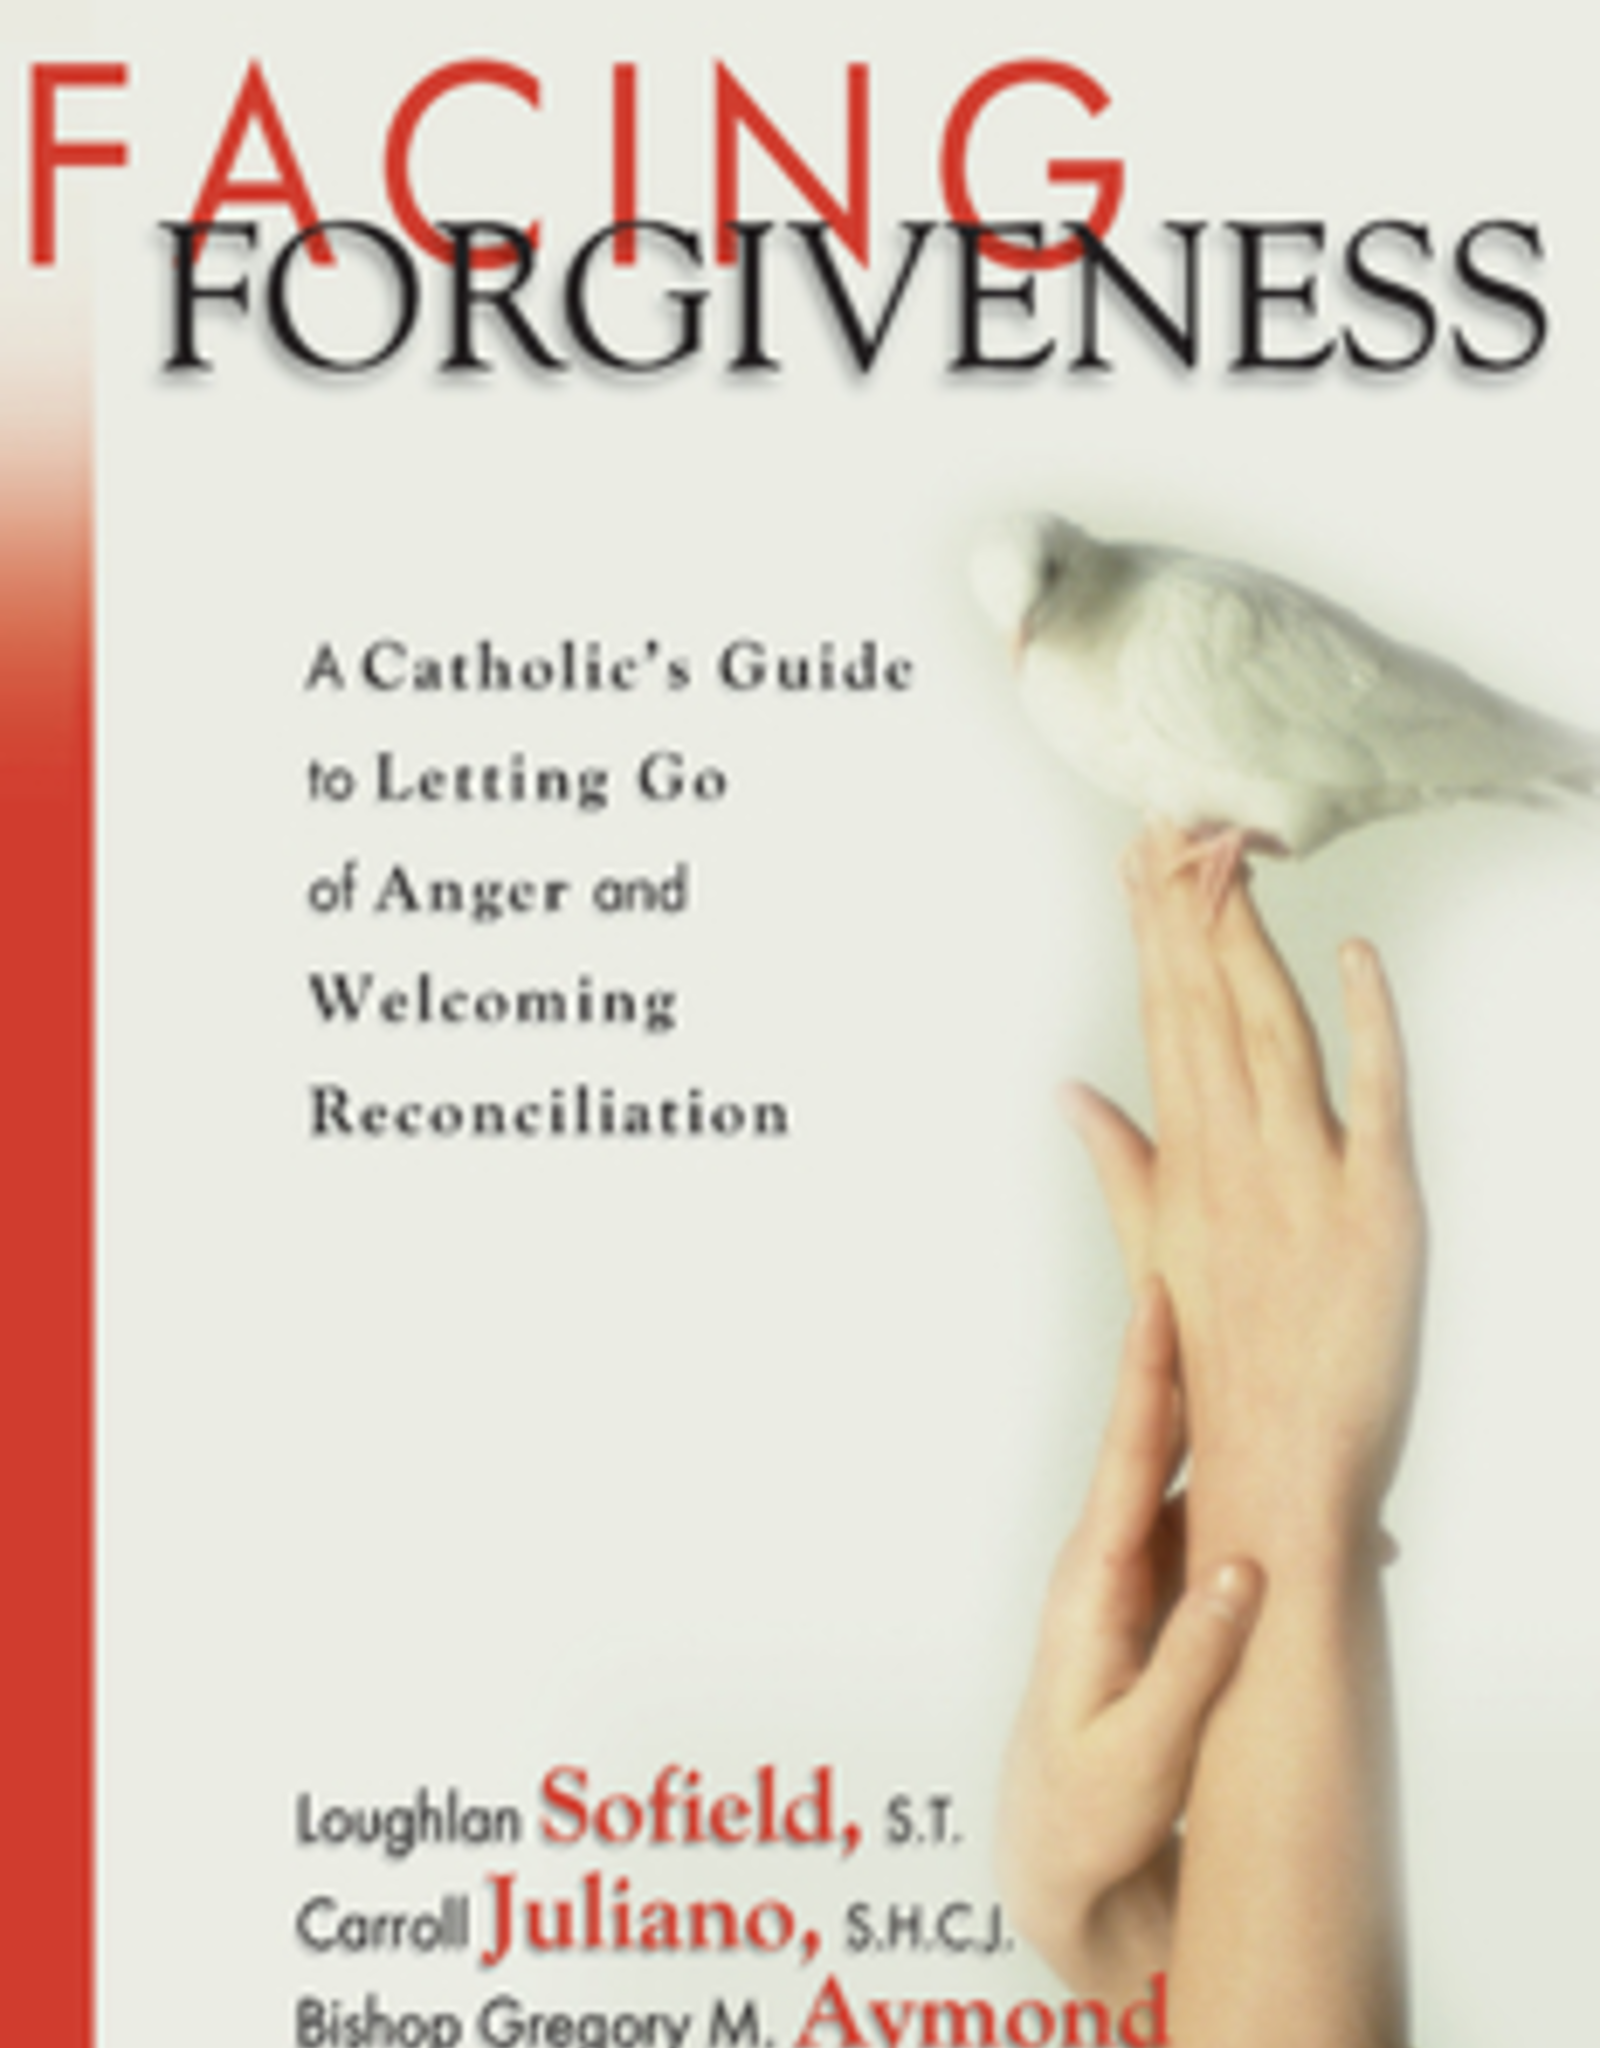 Ave Maria Press Facing Forgiveness:  A Catholic's Guide to Letting Go of Anger and Welcoming Reconciliation, by Archbishop Gregory M. Aymond, Loughlan Sofield and Carroll Juliano (paperback)